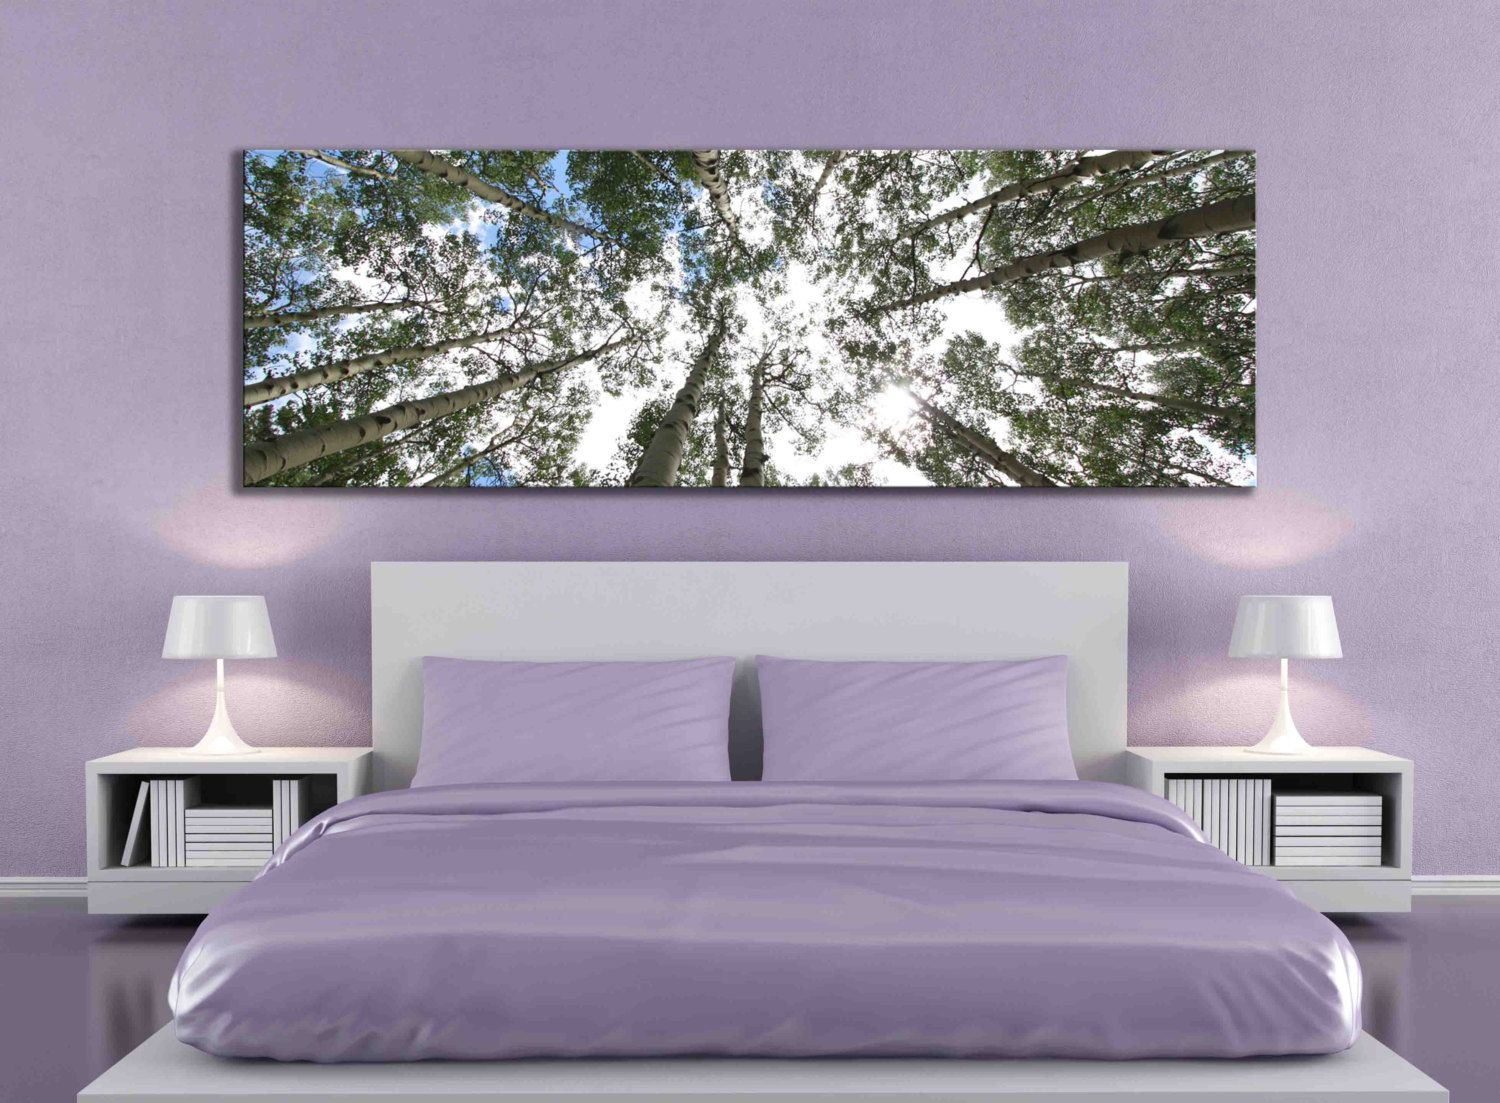 Big aspen tree photograph large panoramic canvas print